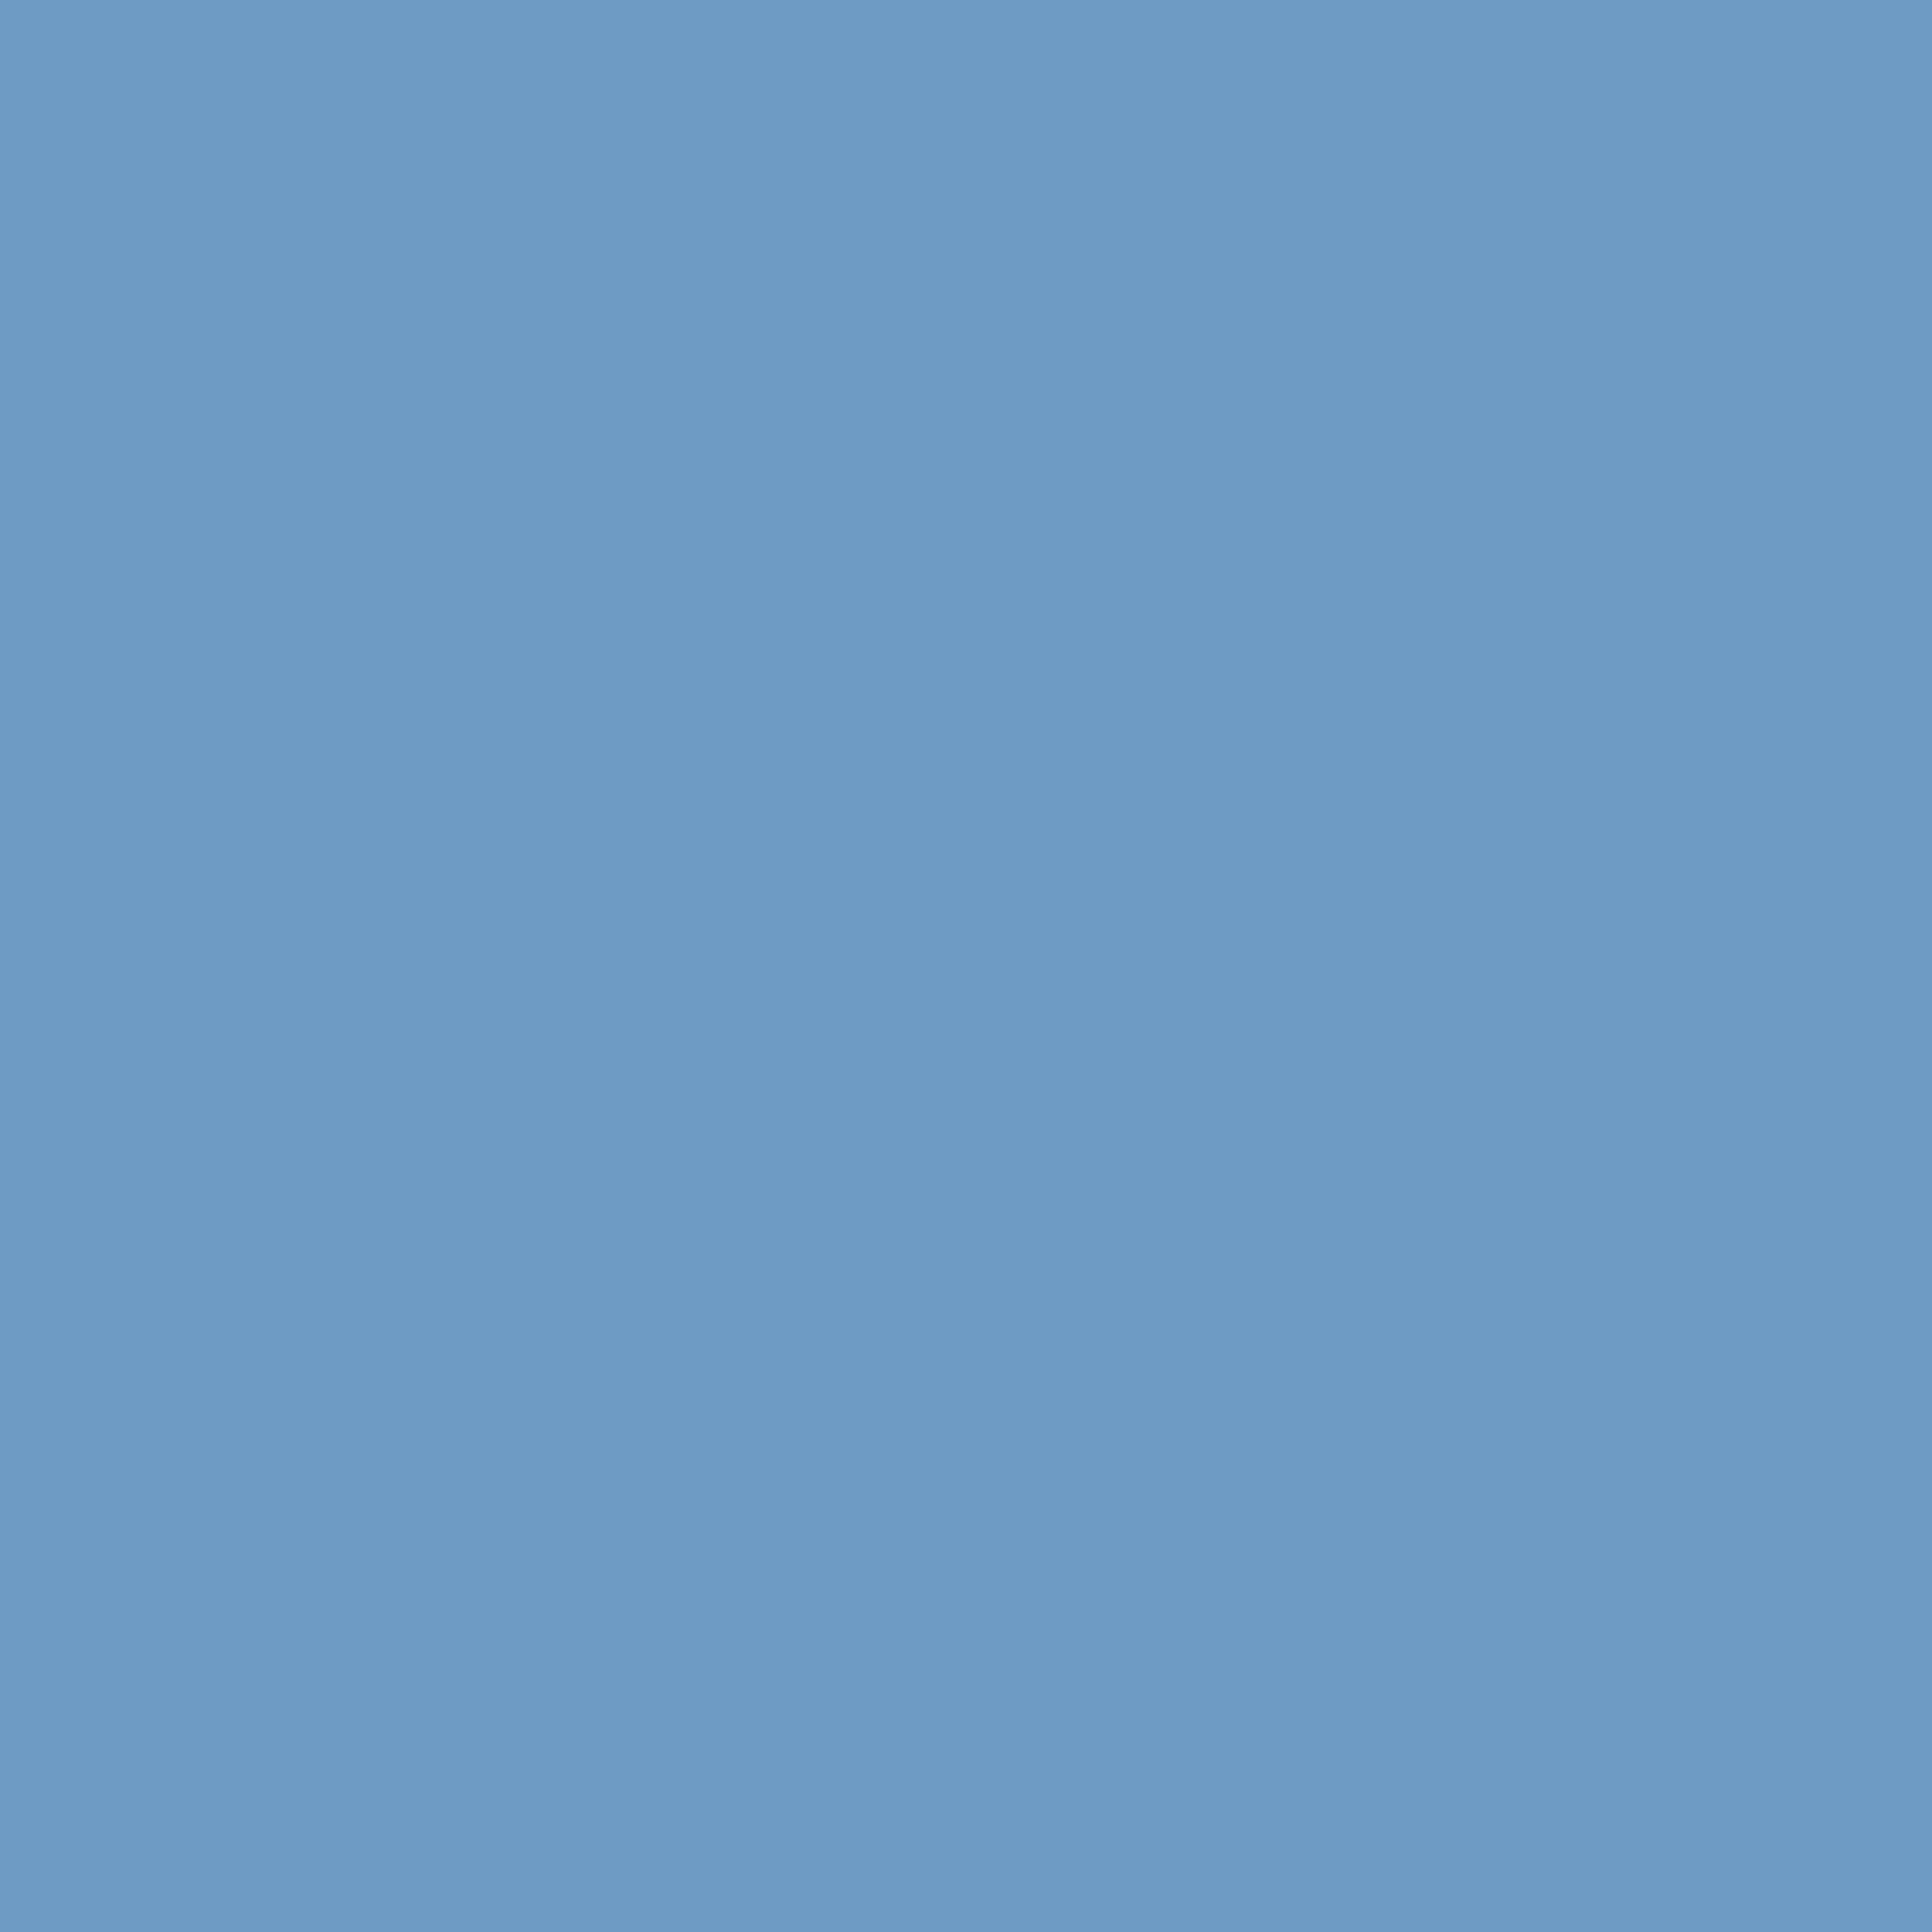 2048x2048 Cerulean Frost Solid Color Background